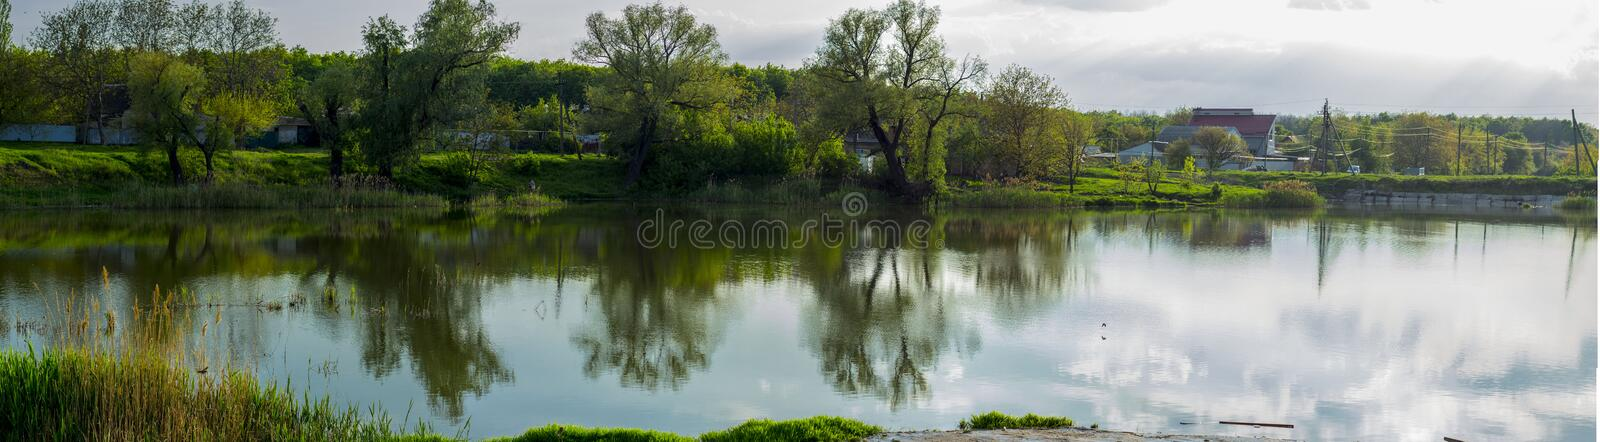 A river covered with trees and reeds. royalty free stock photos